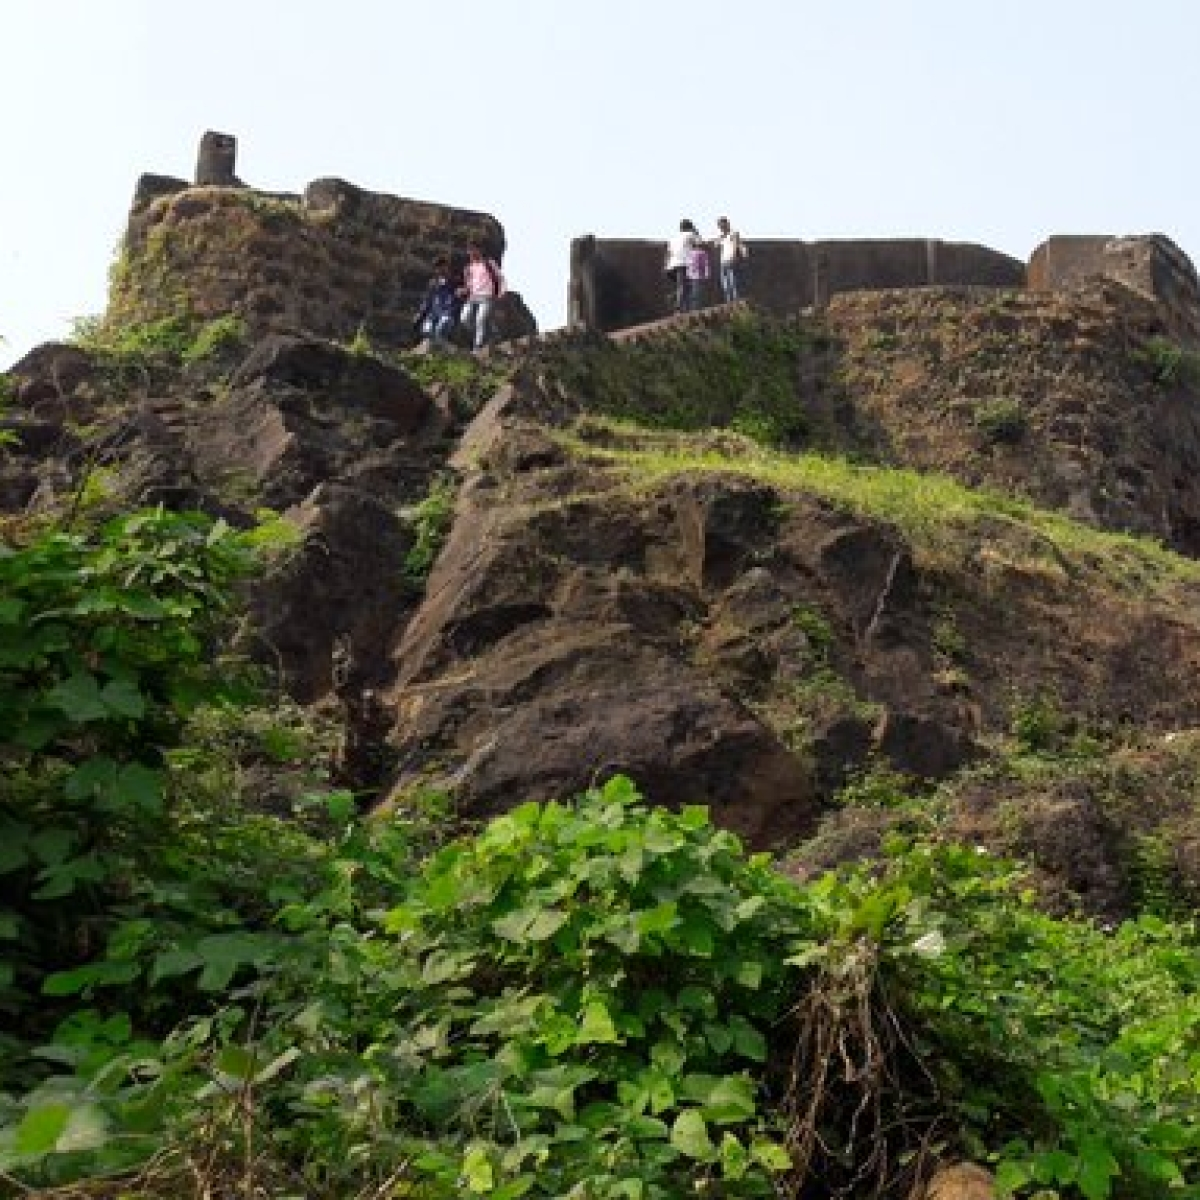 Mumbai: Civic body garden cell to revamp Worli, Sion forts